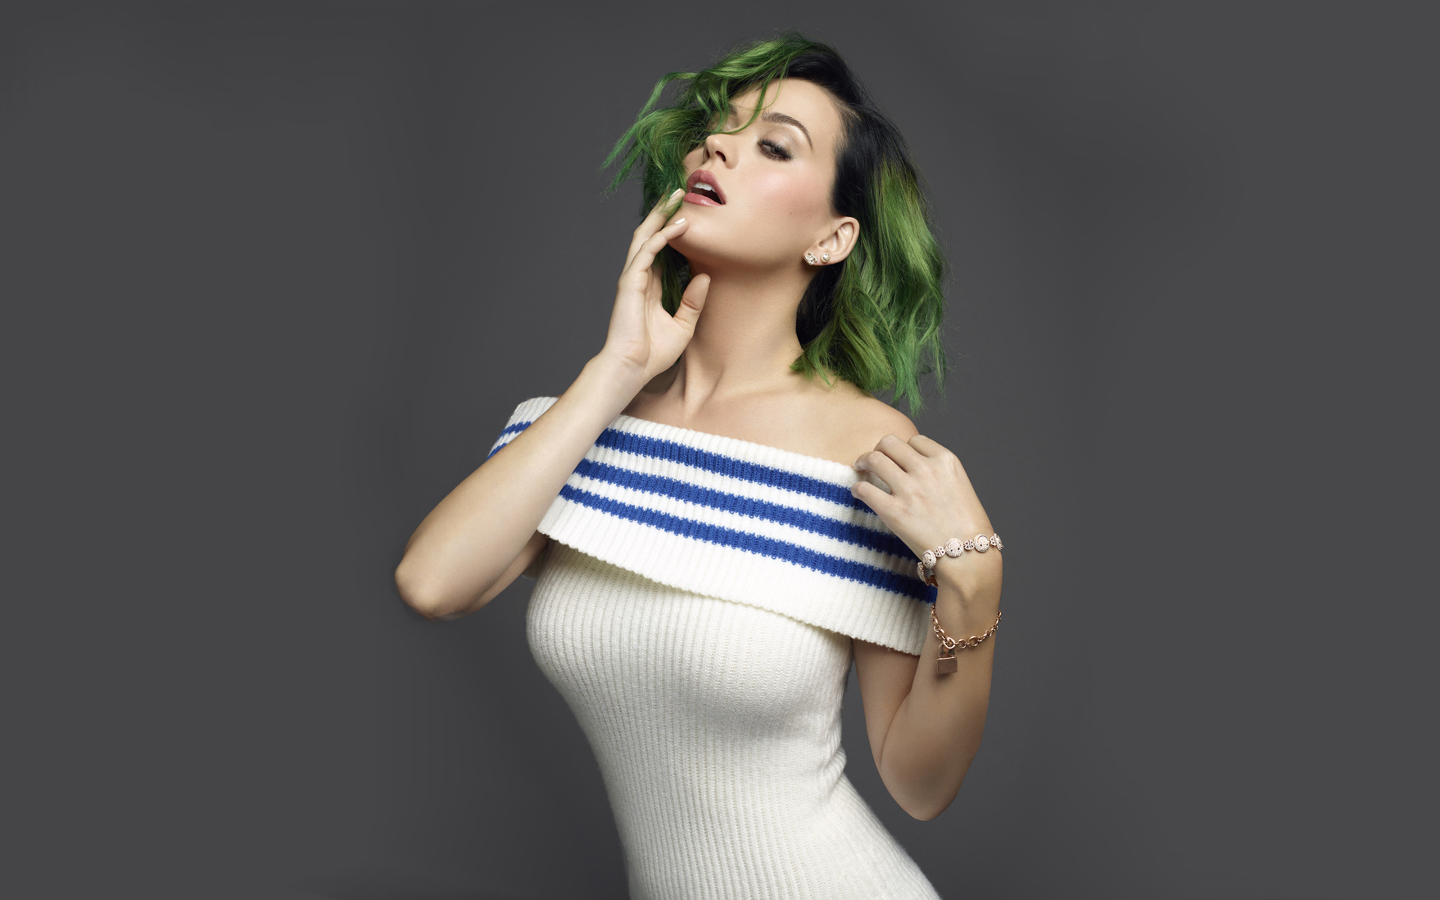 Katy Perry montrer fit body